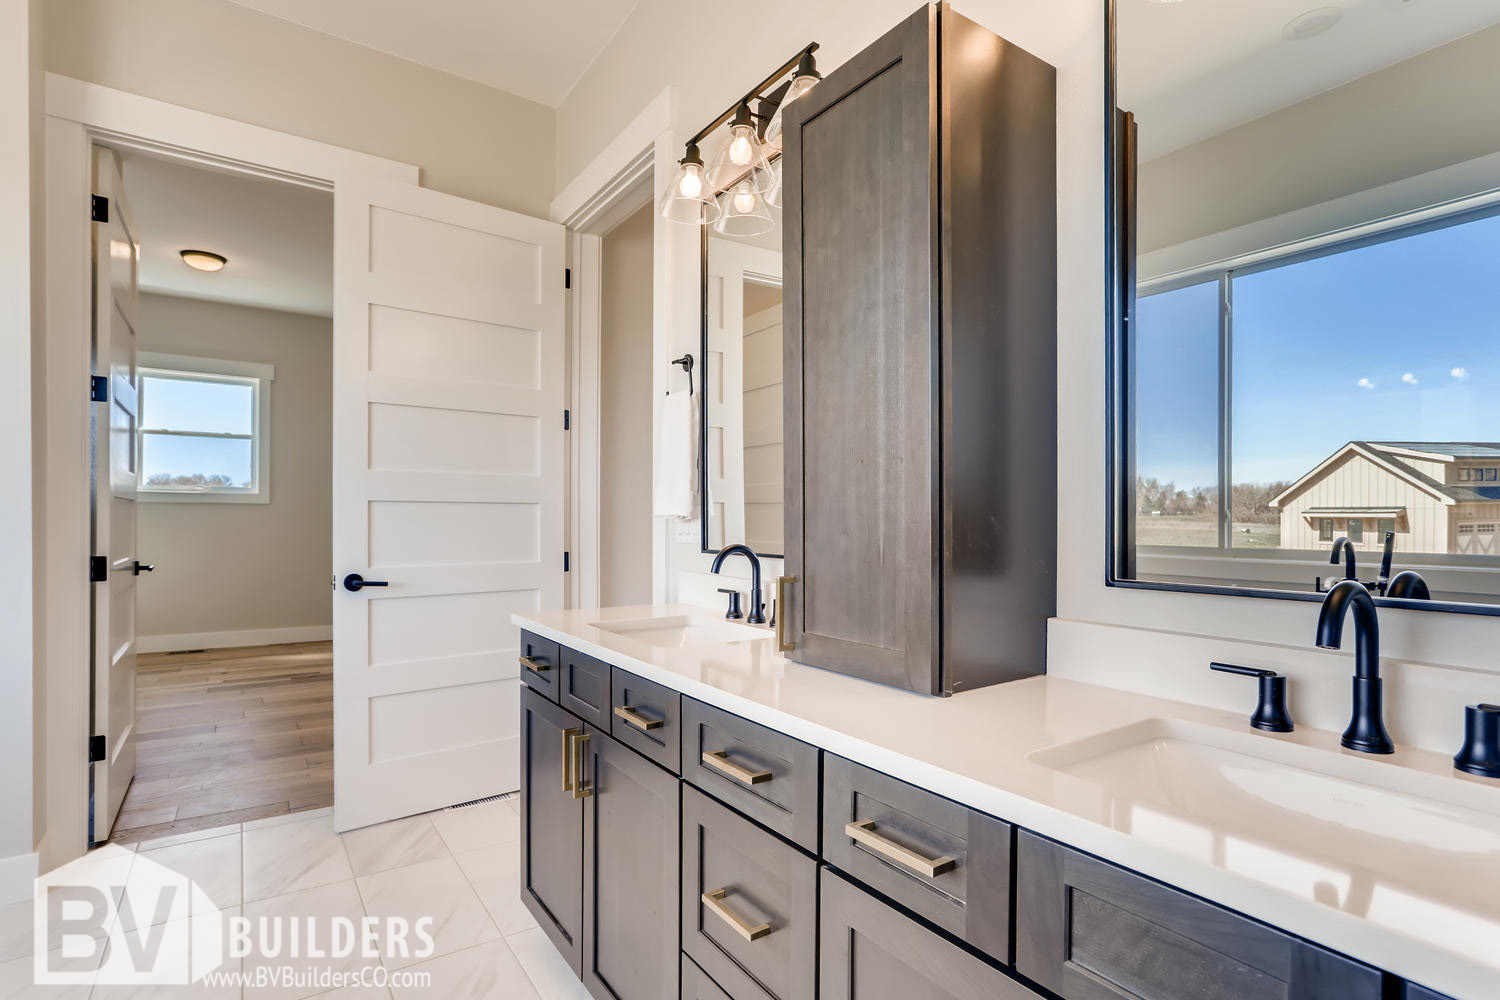 Modern farmhouse master bathroom with double vanity